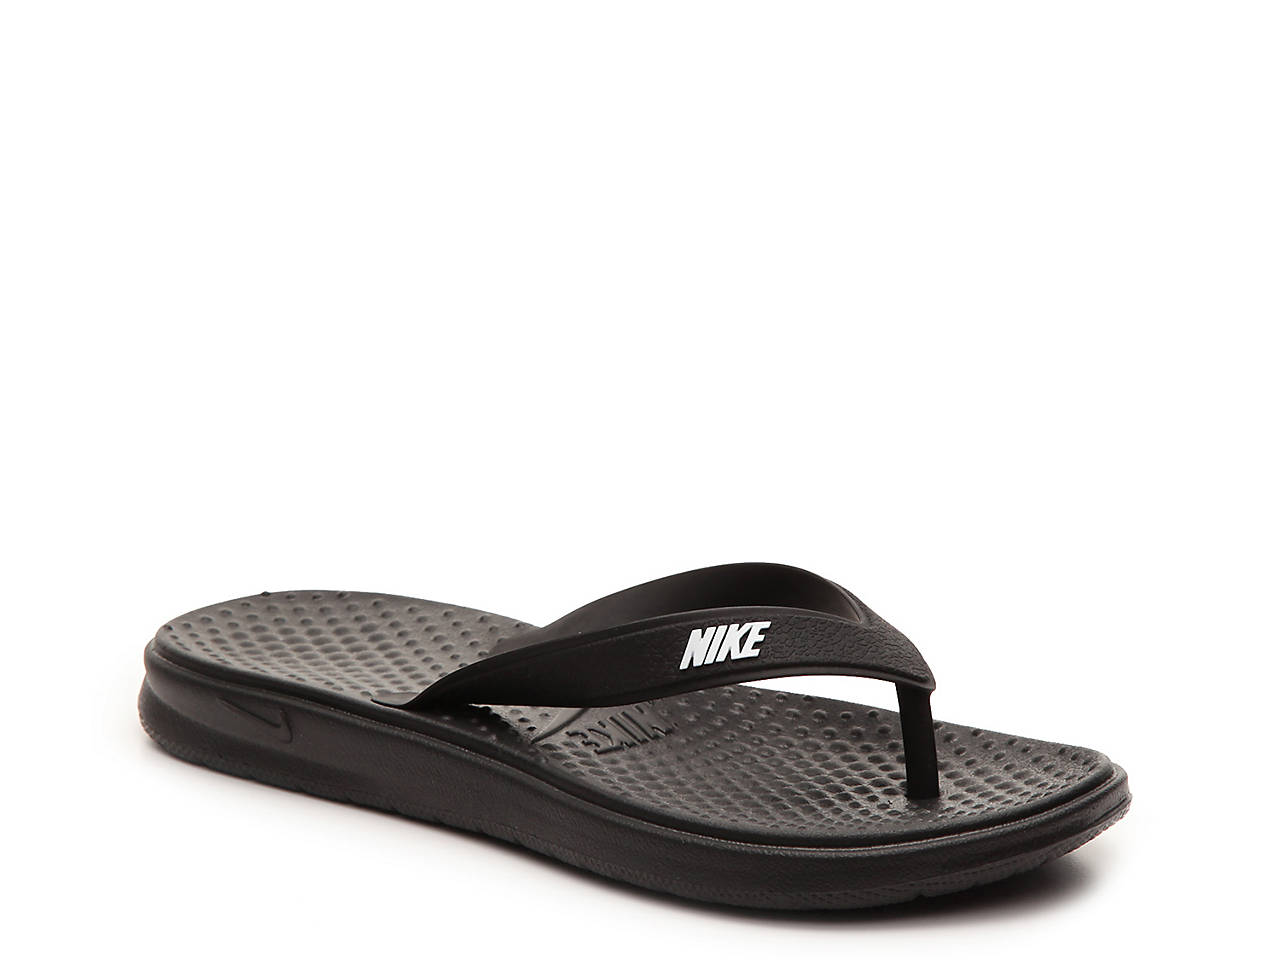 71d943924ca0 Nike Solay Flip Flop Women s Shoes